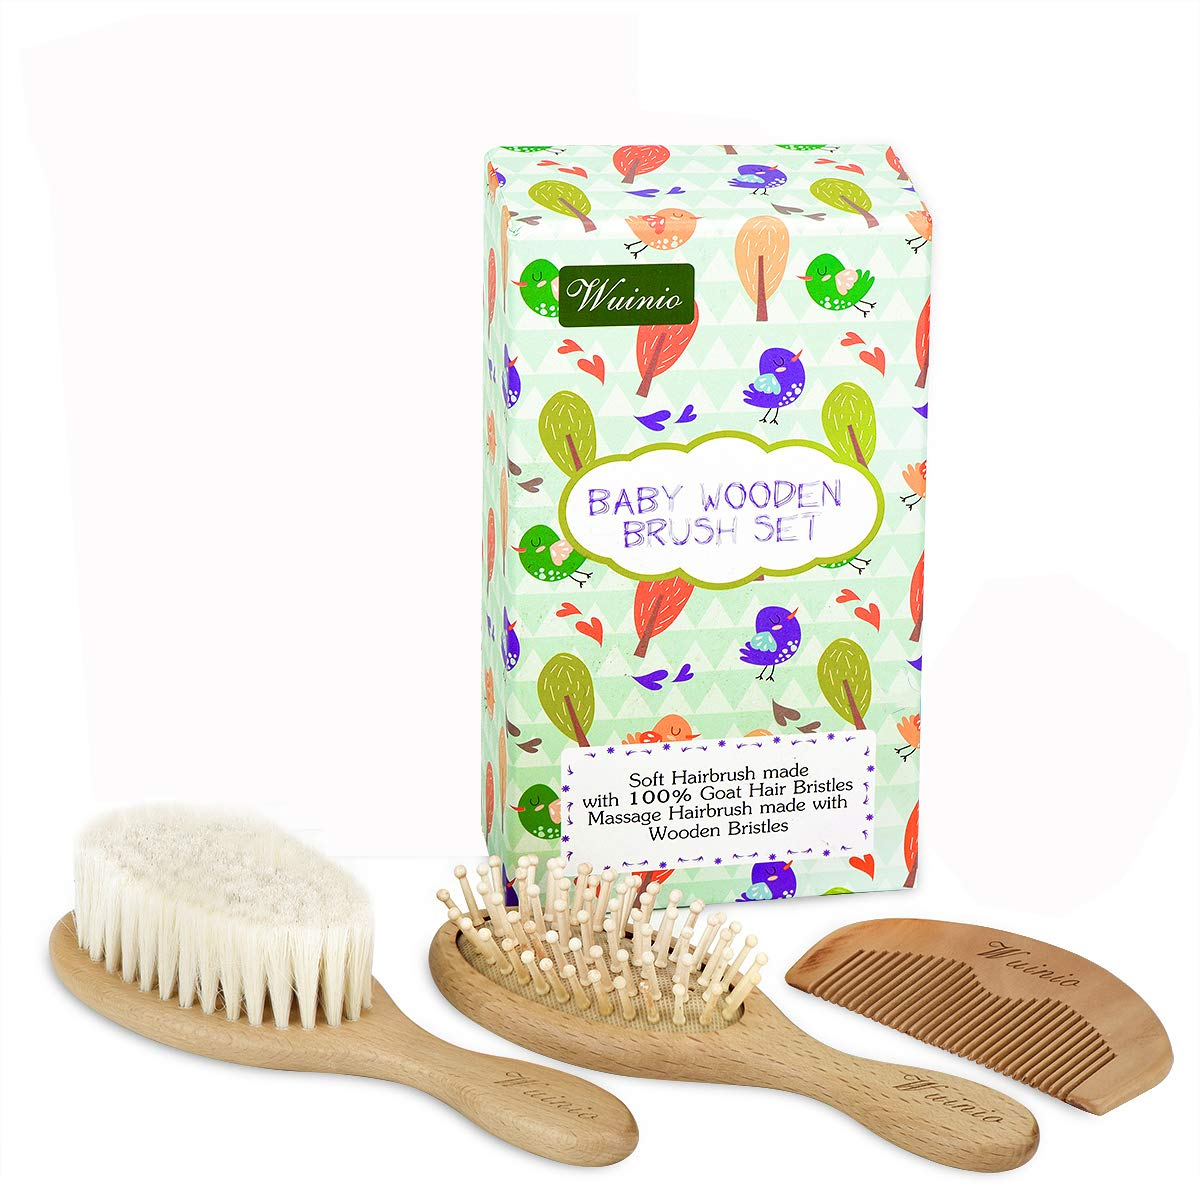 4Pcs Wooden Baby Goat Hair Brush and Comb Set Grooming kit for Newborns Toddlers//Soft Goat Hair Bristles for Cradle Cap//Wood Bristles Brush for Massage//Baby Shower Registry Gift